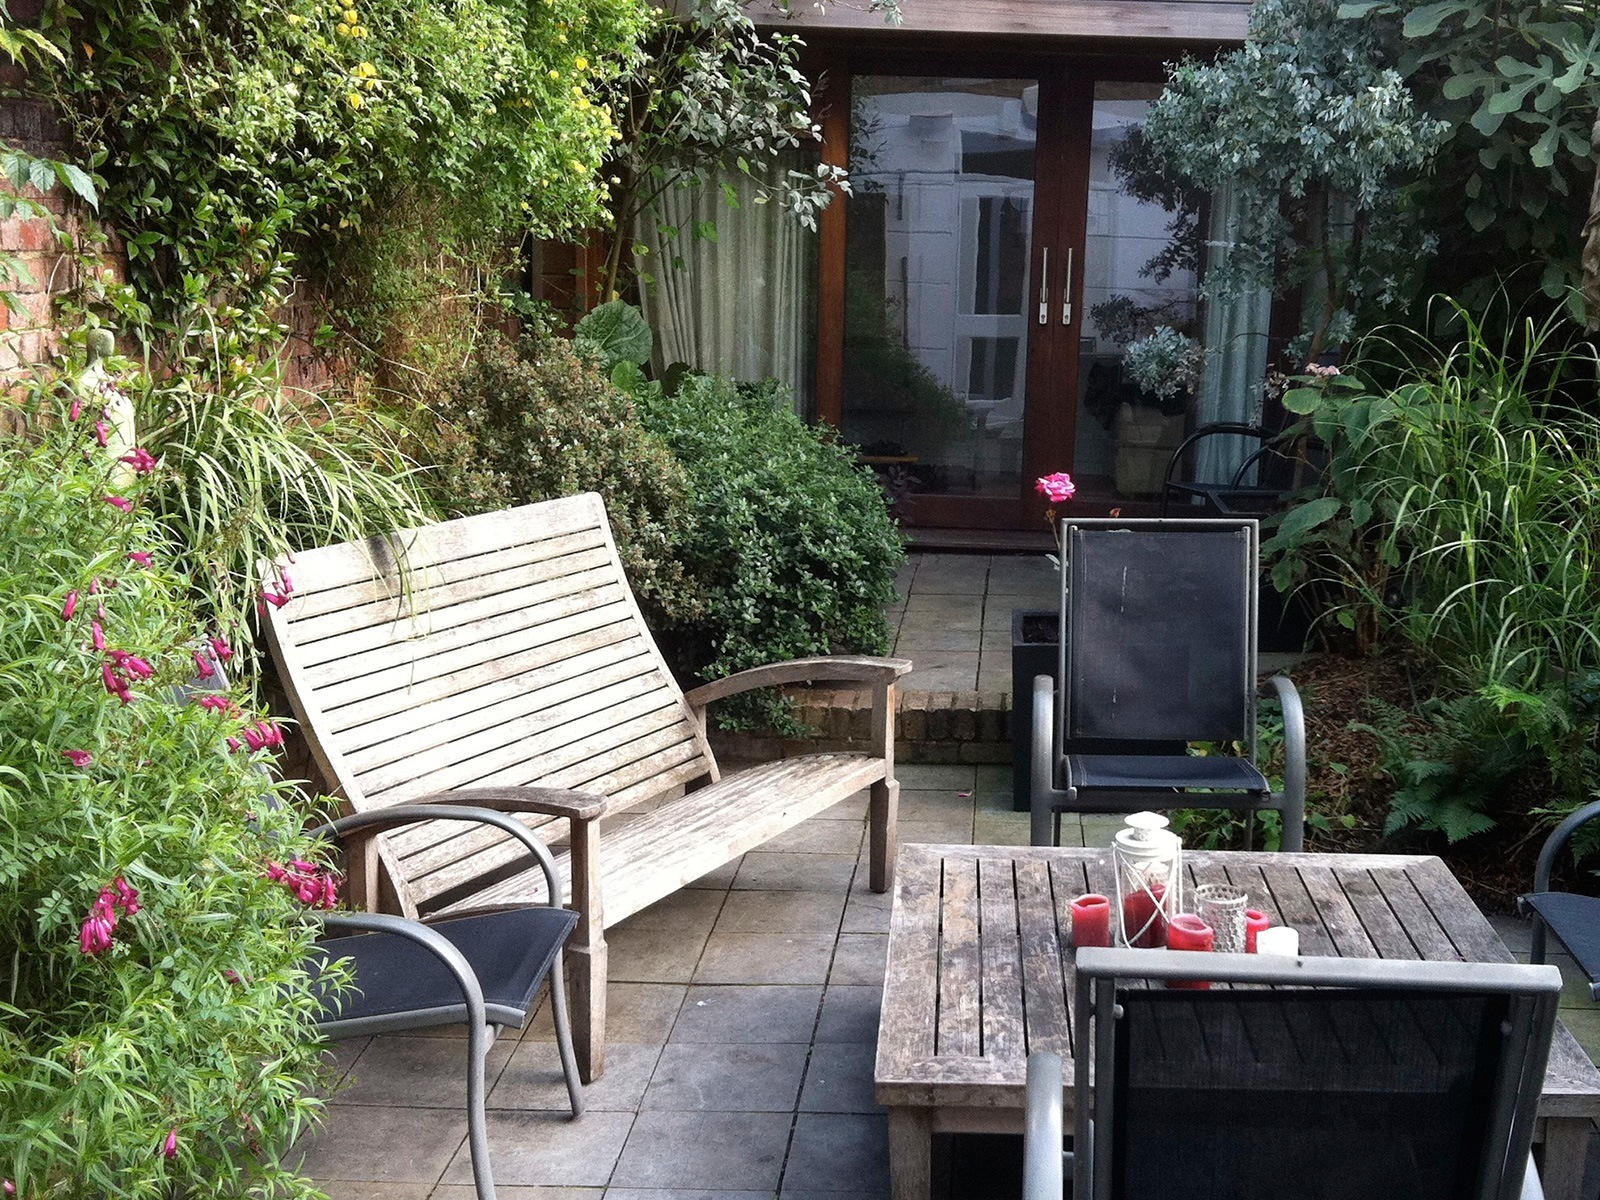 This well-established garden is surrounded by high walls and buildings but is the perfect place to unwind in the evening sun.